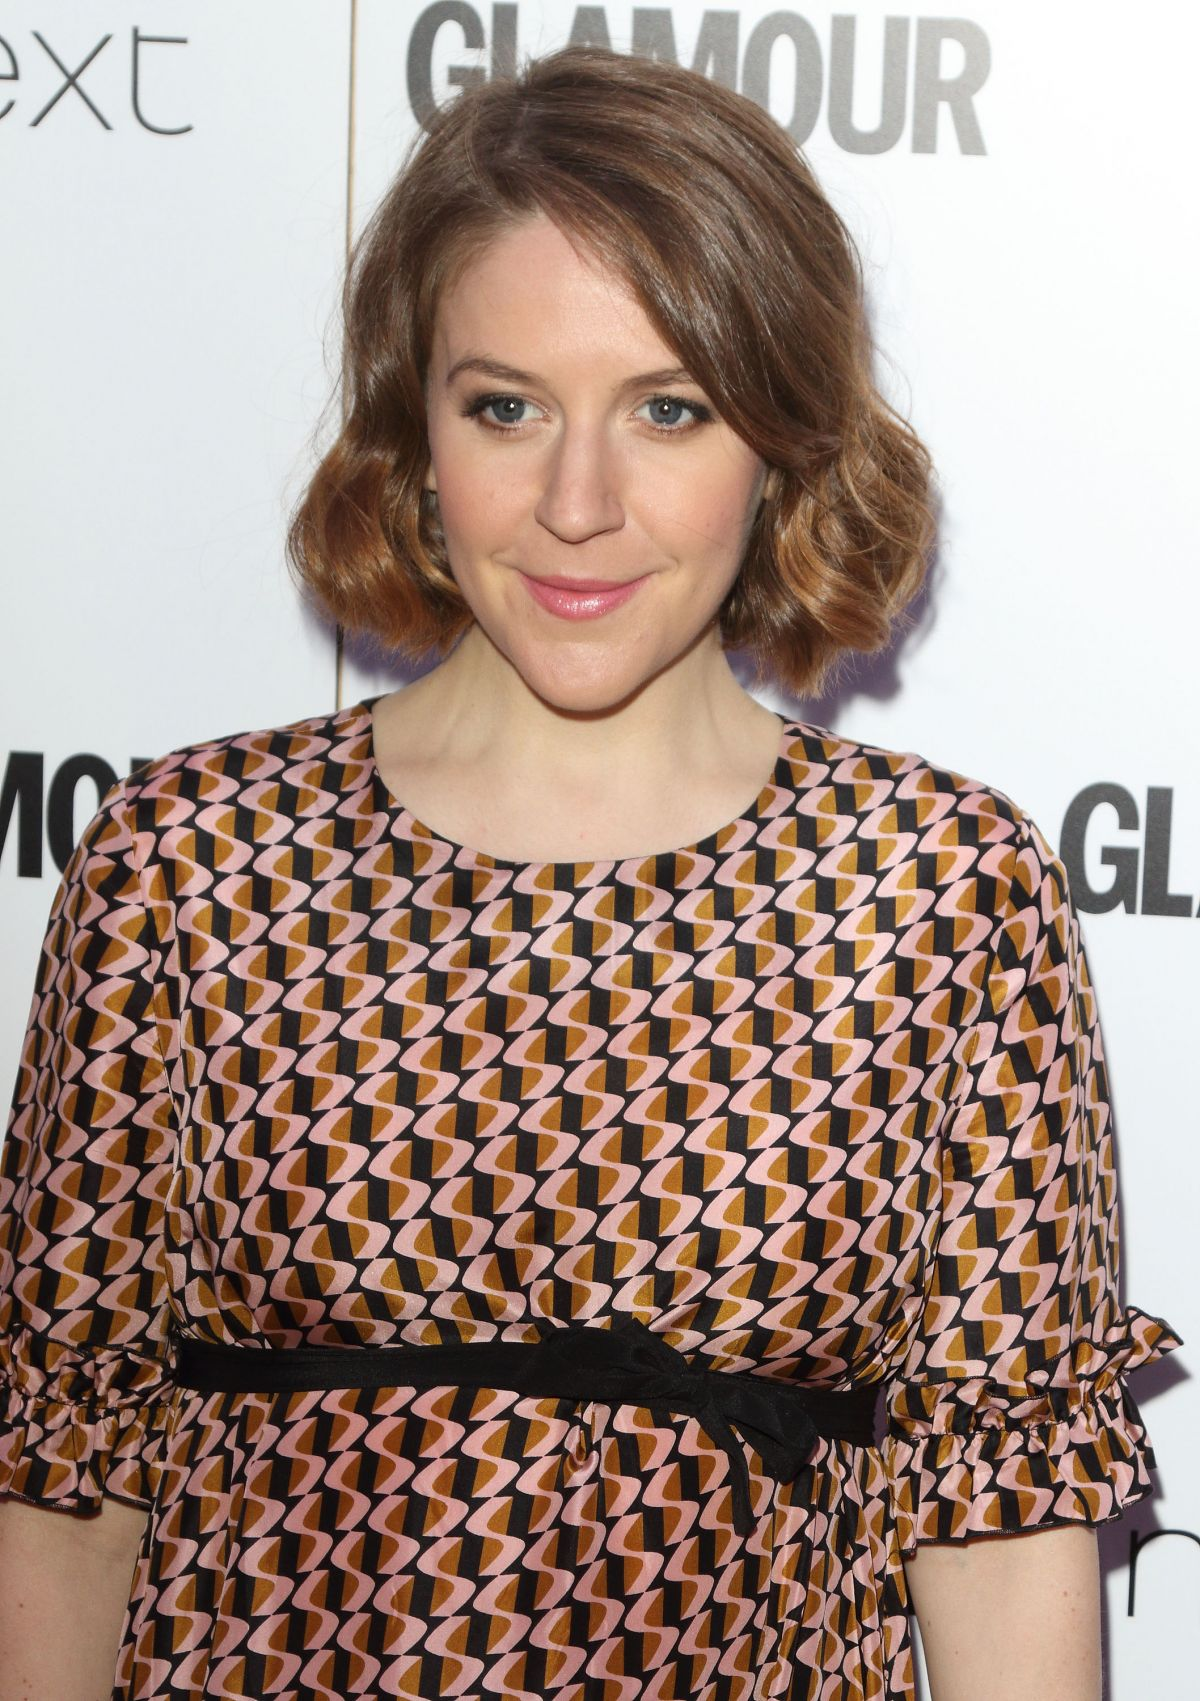 GEMMA WHELAN at Glamour Women of the Year Awards in London 06/06/2017